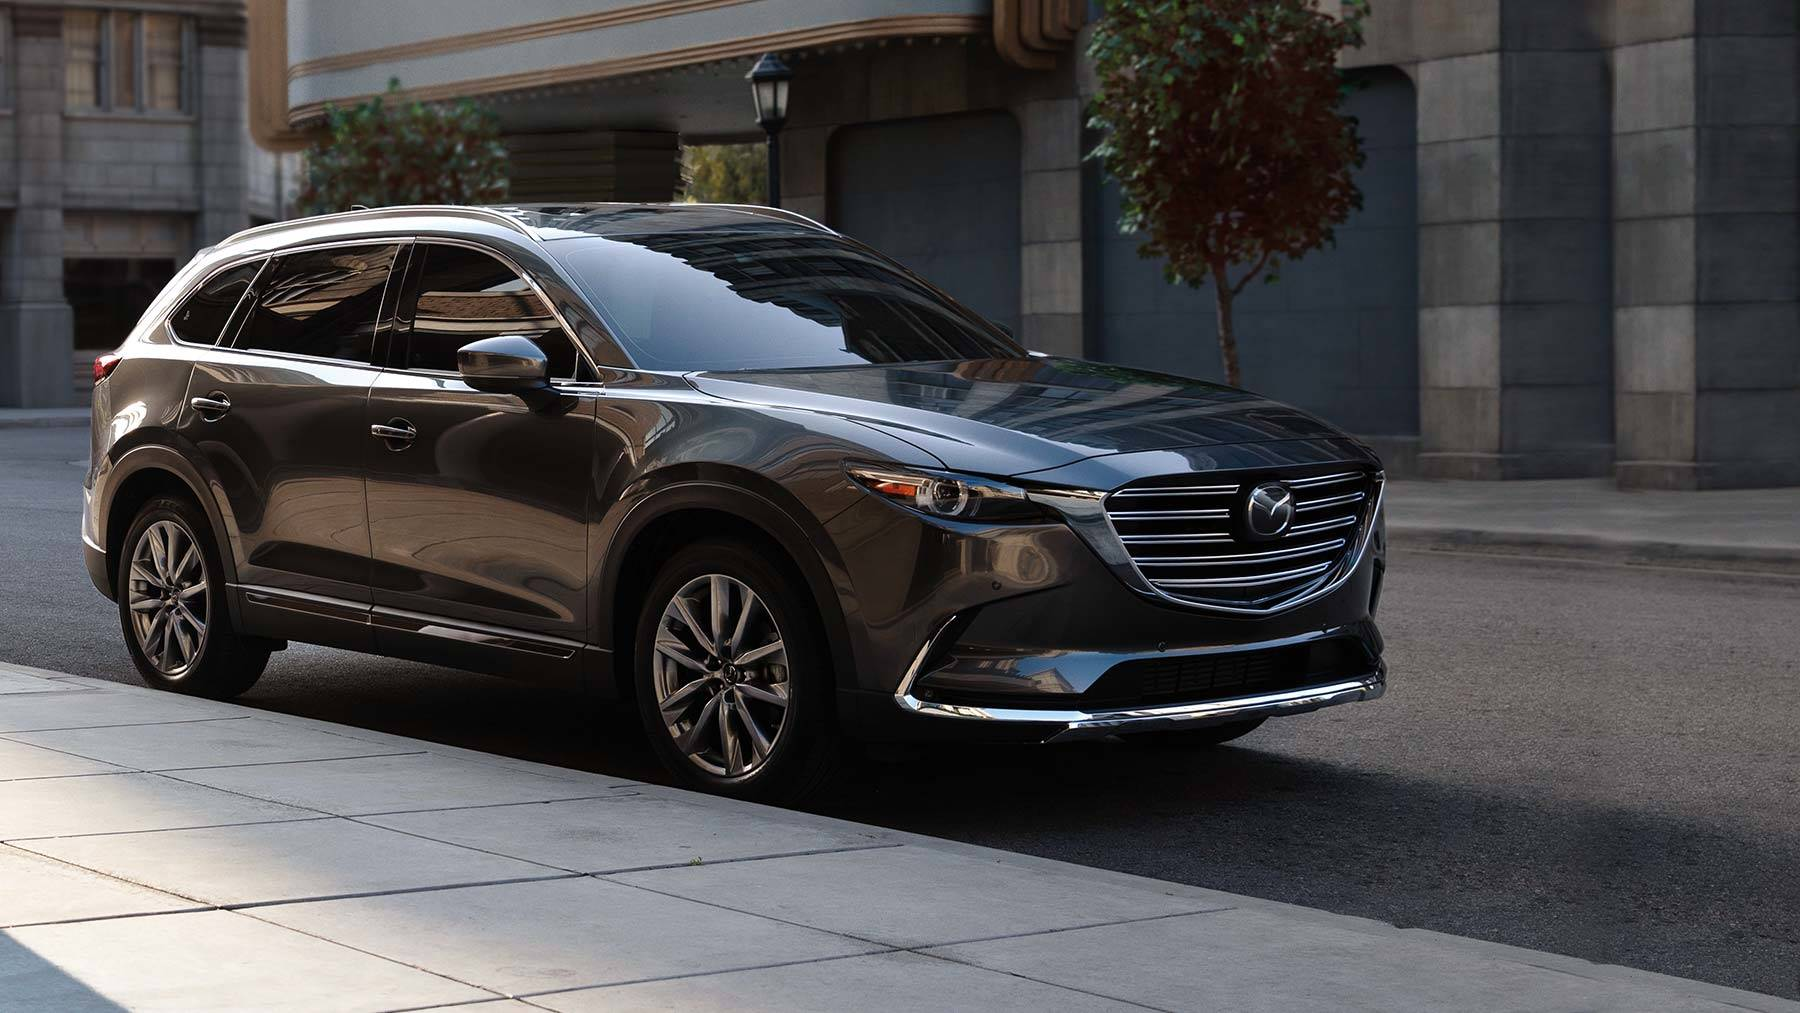 Mazda CX-9, one of the best family road trip vehicles